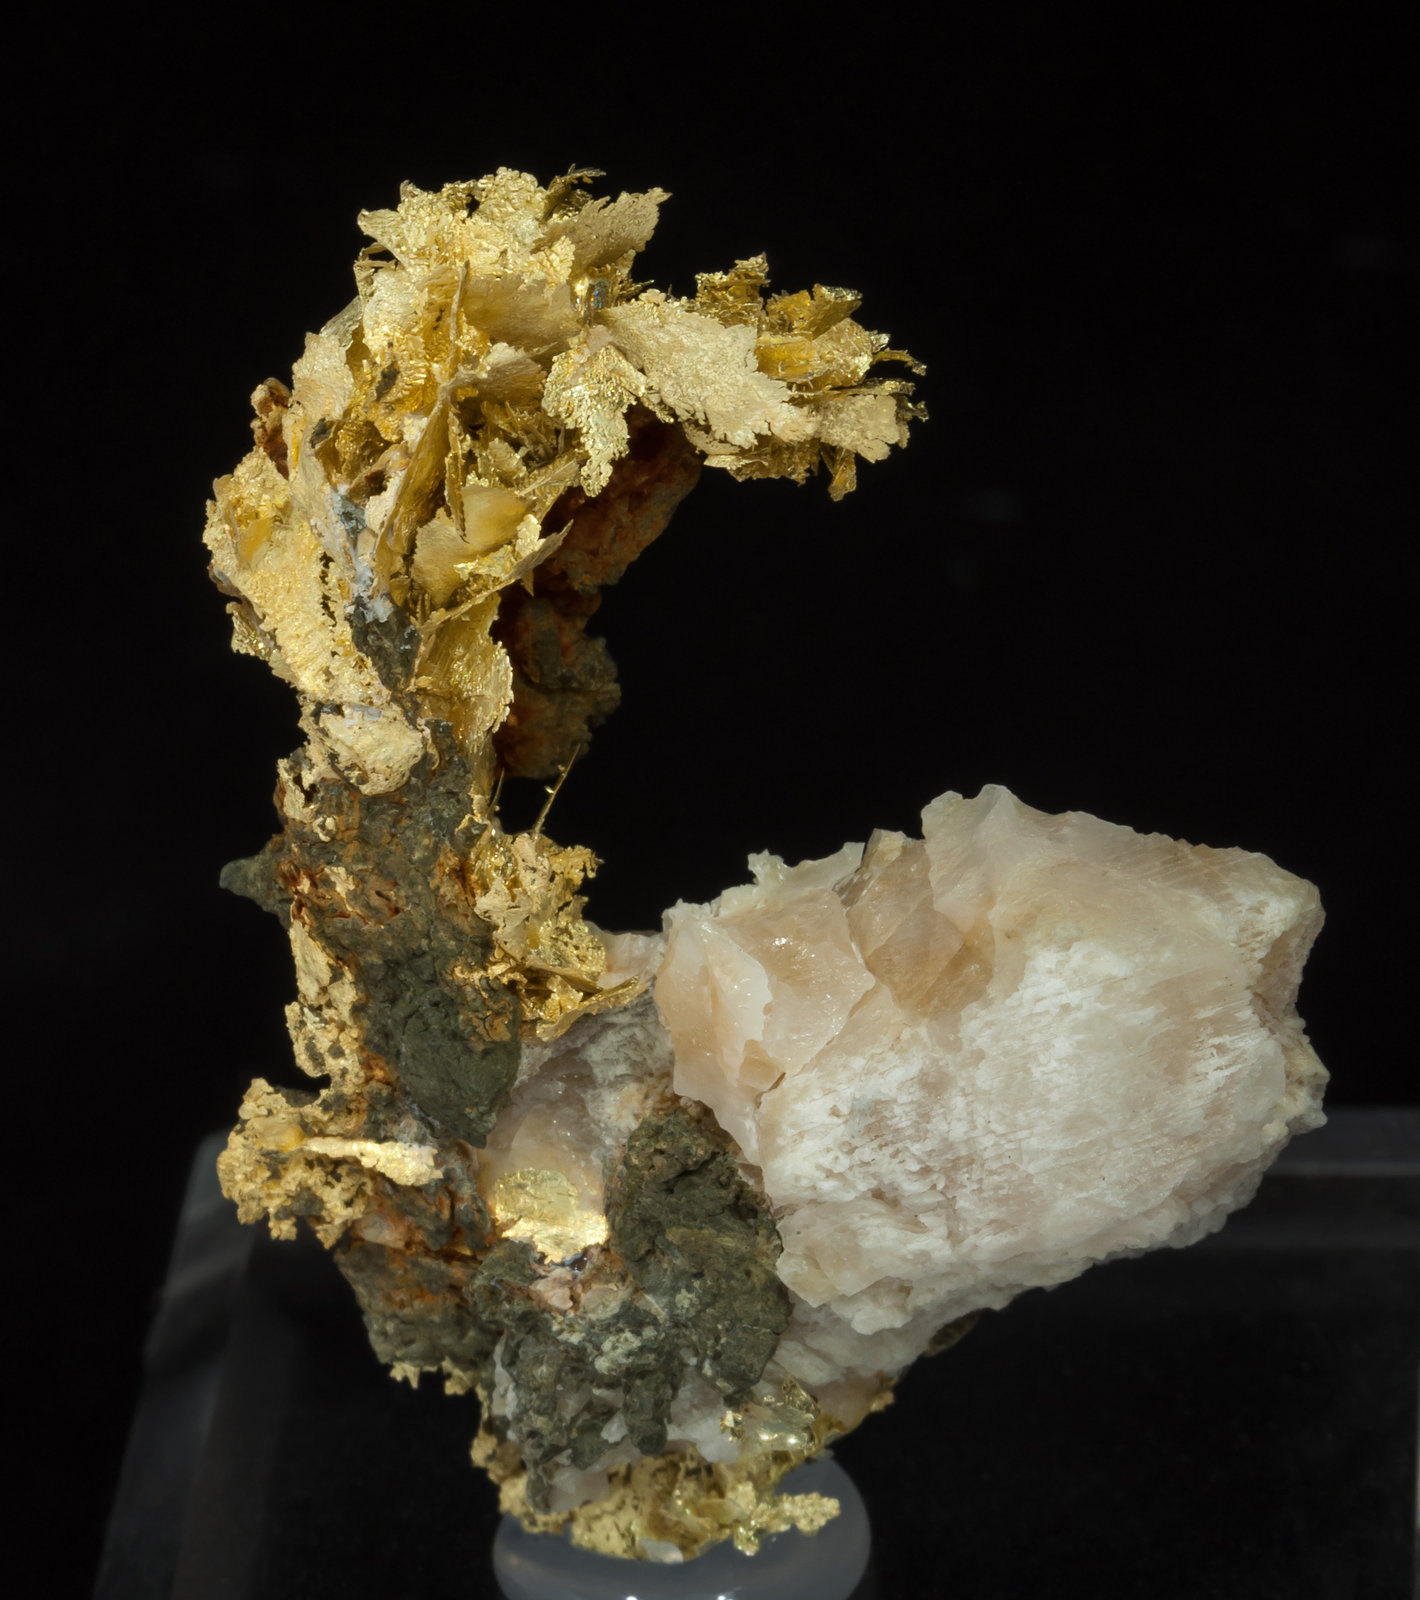 specimens/s_imagesAD5/Gold_electrum-TF67AD5f.jpg